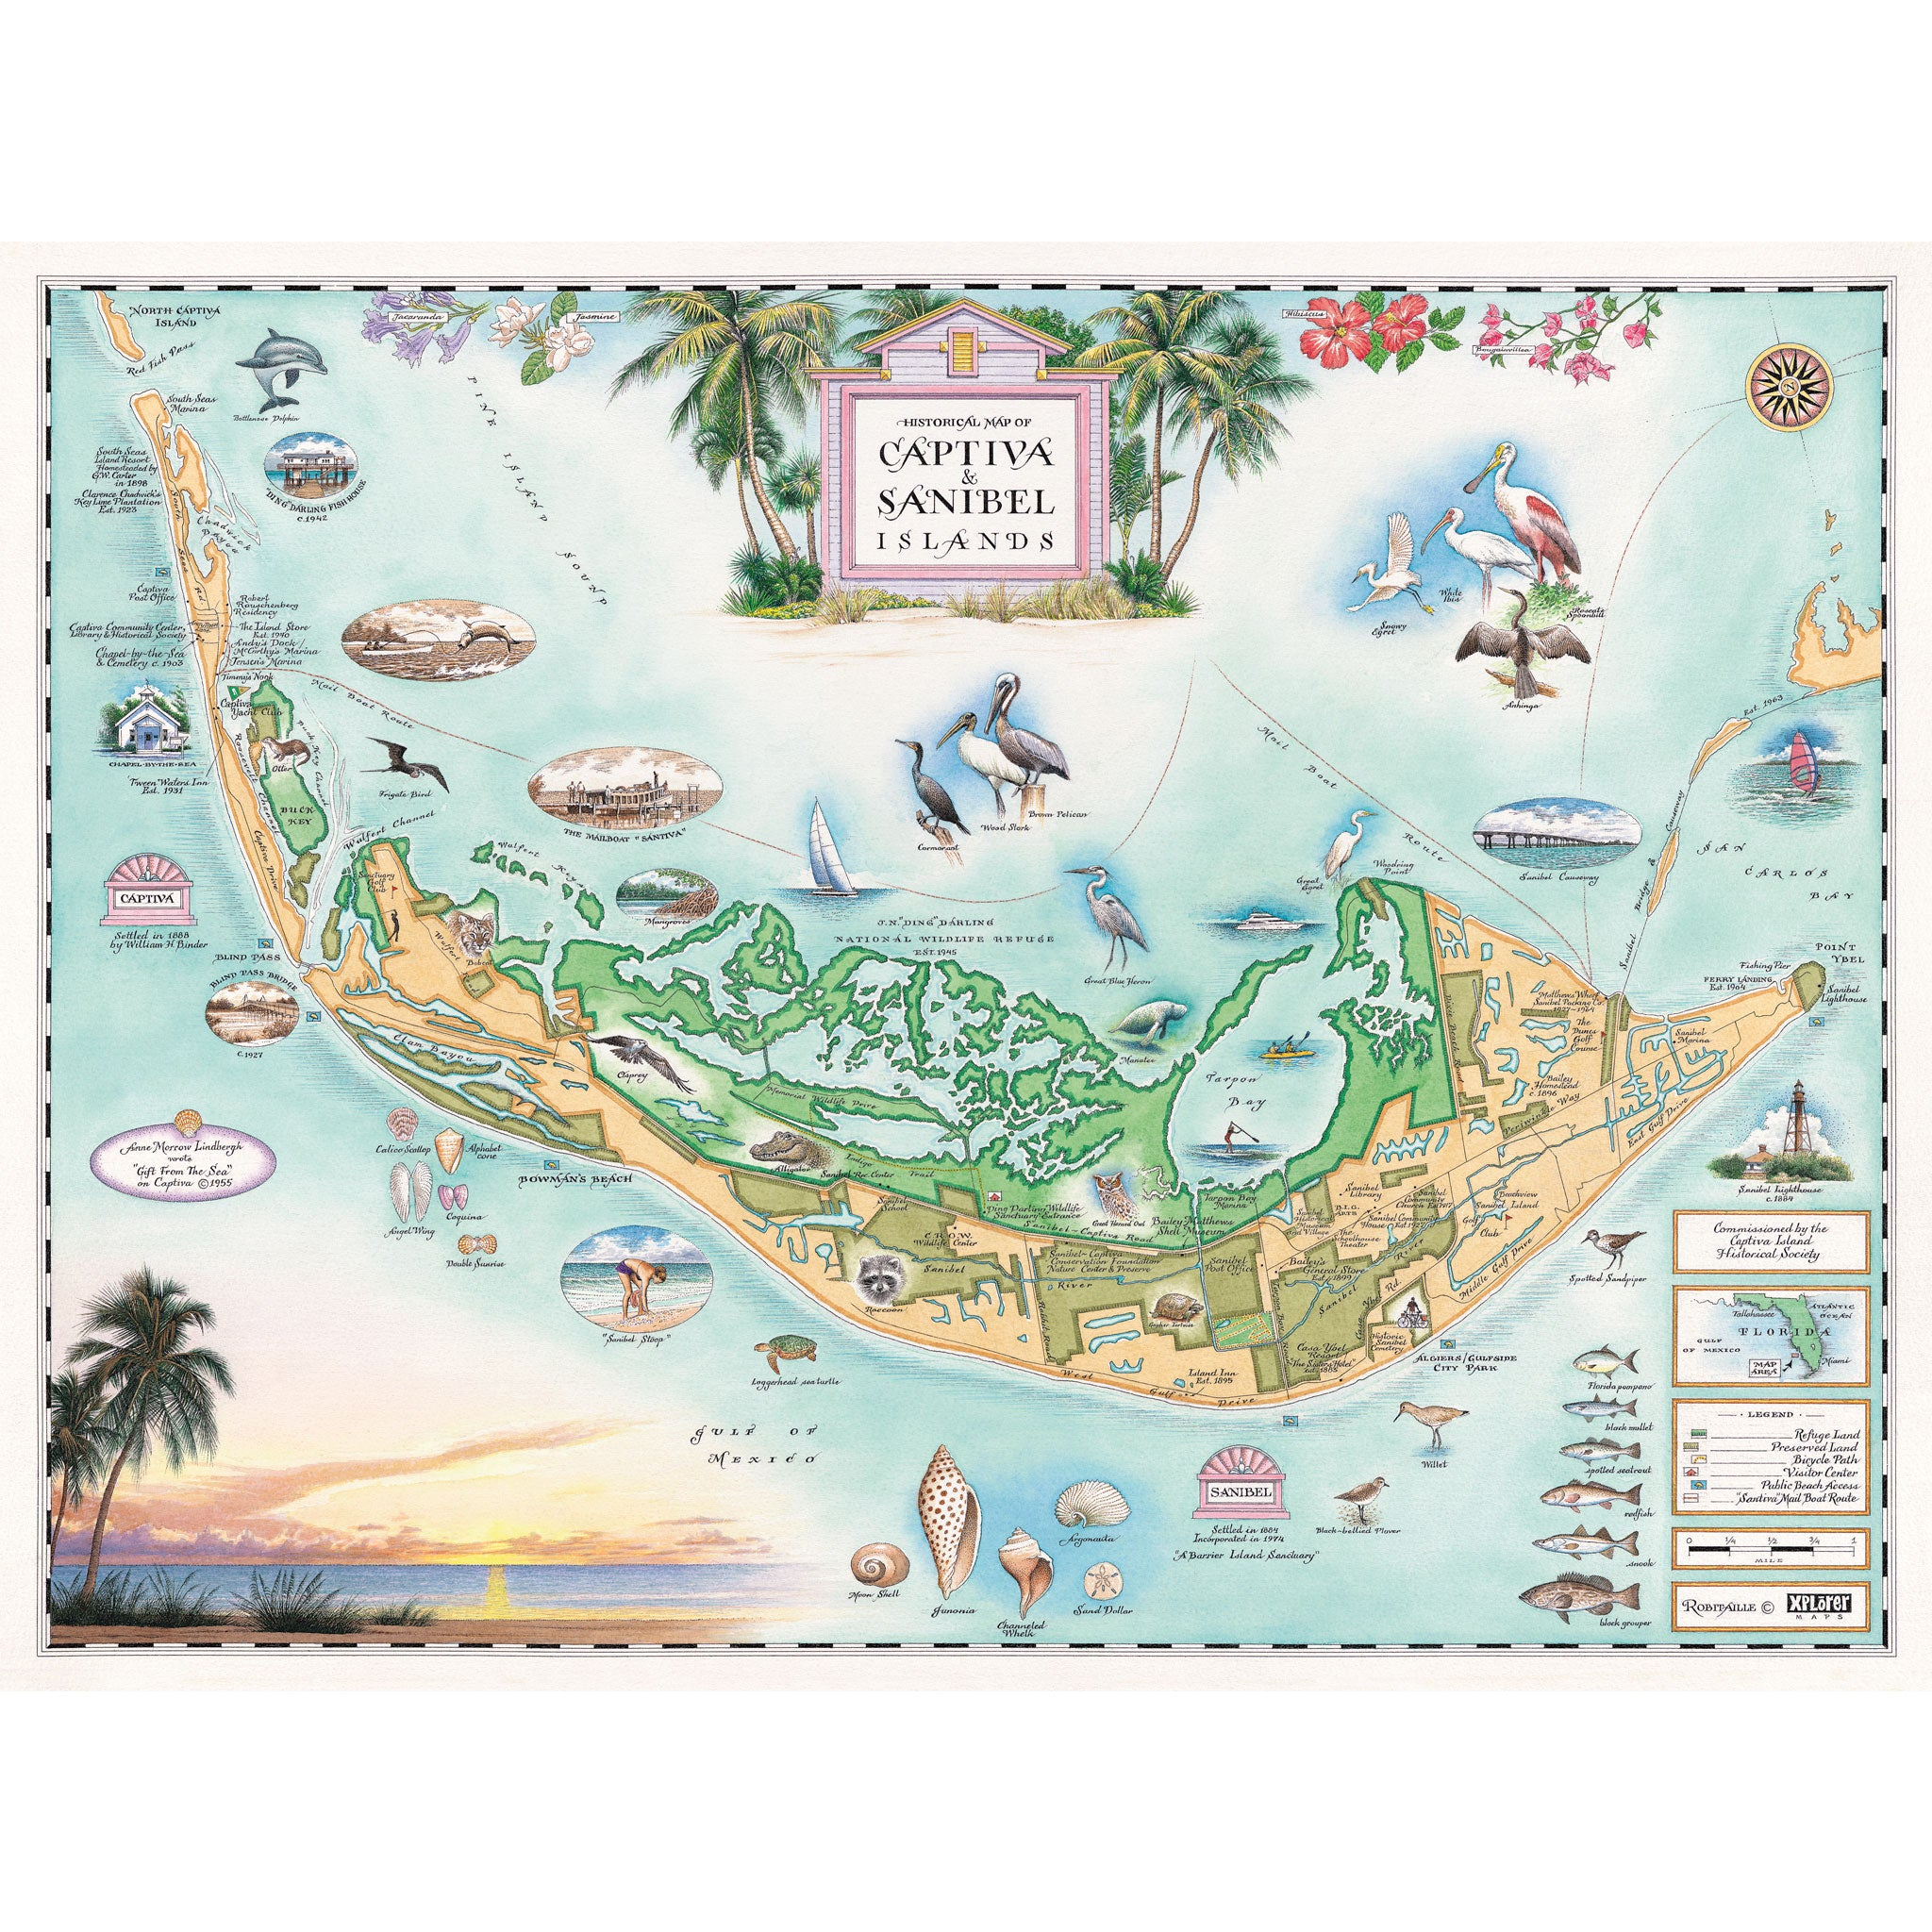 Captiva Island: Sanibel-Captiva Islands Map